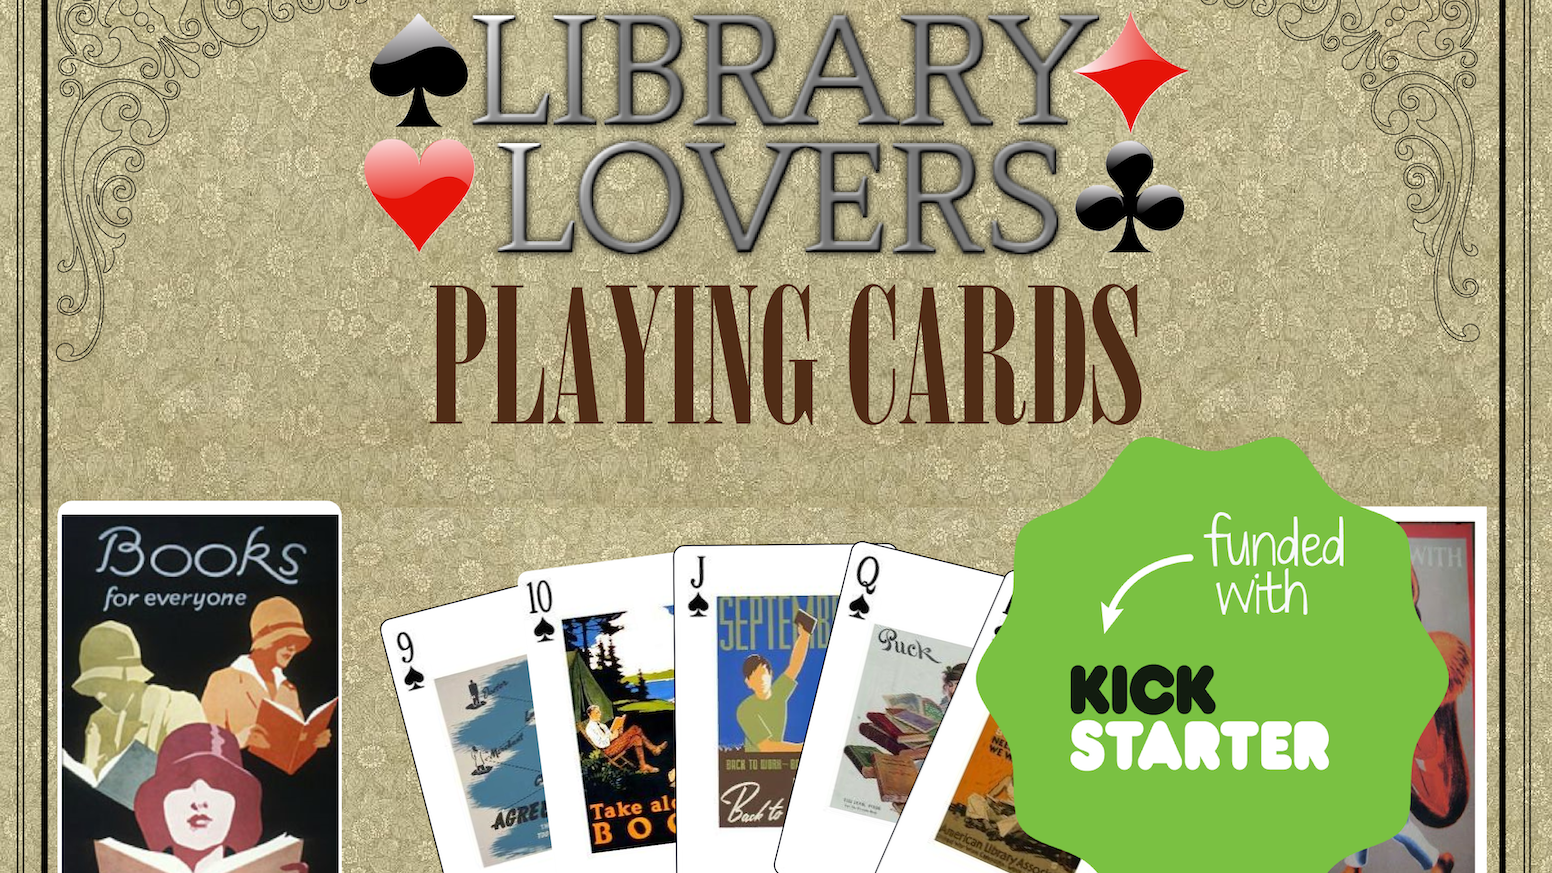 A classic playing card deck illustrated with vintage images used to promote books and libraries in the 1920s, 30s, 40s & 50s.